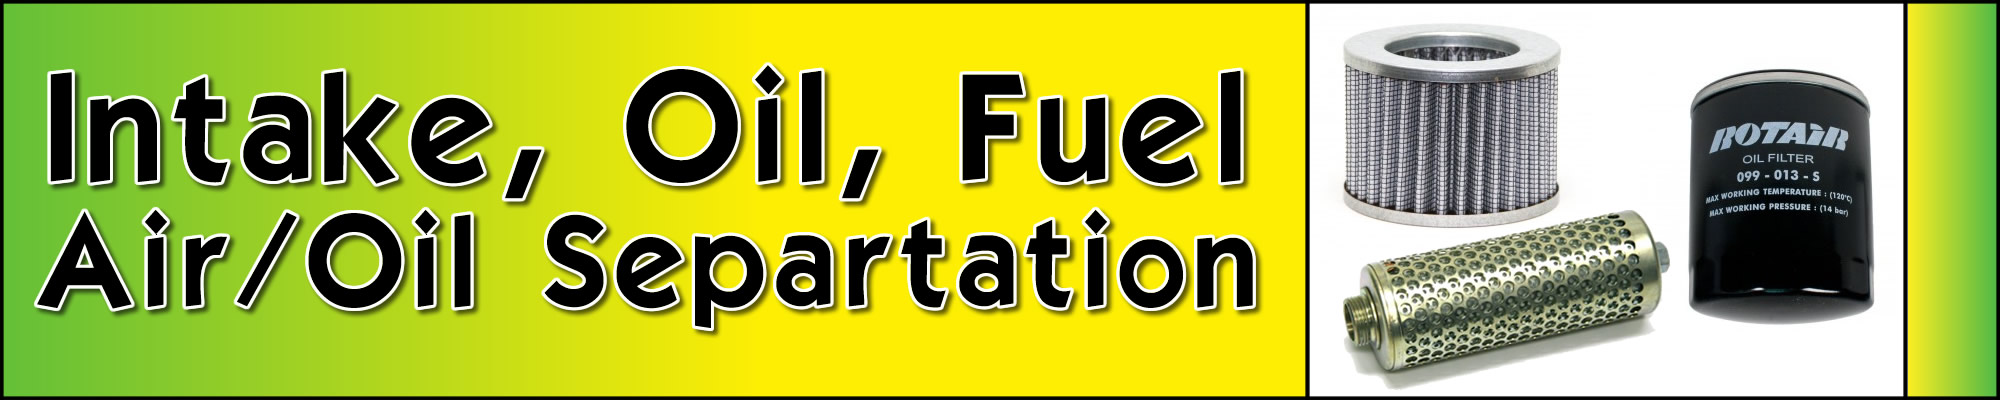 Intake, Oil, Fuel & Air/Oil Separation